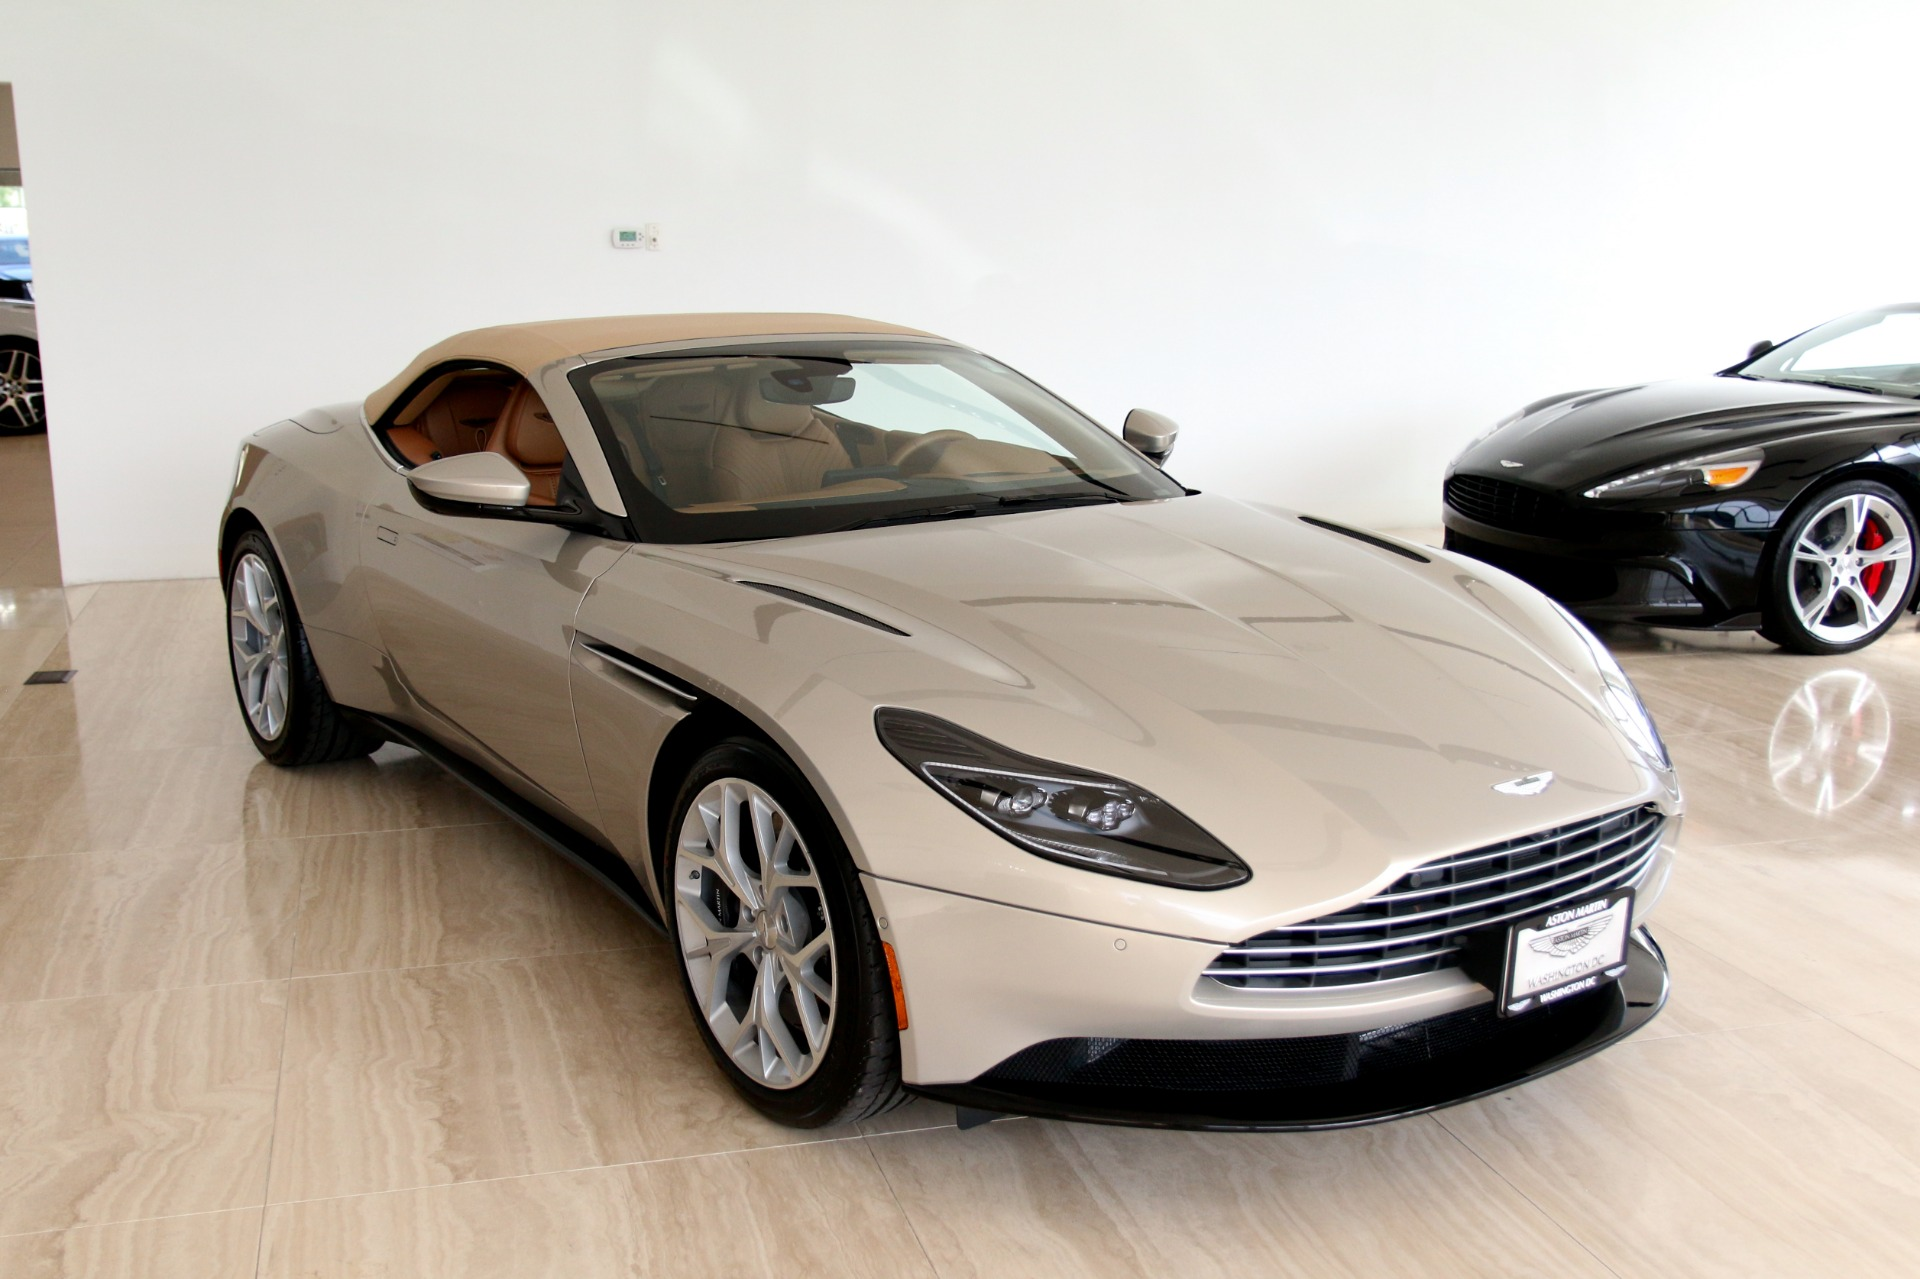 2019 Aston Martin Db11 Volante Stock 9nm05888 For Sale